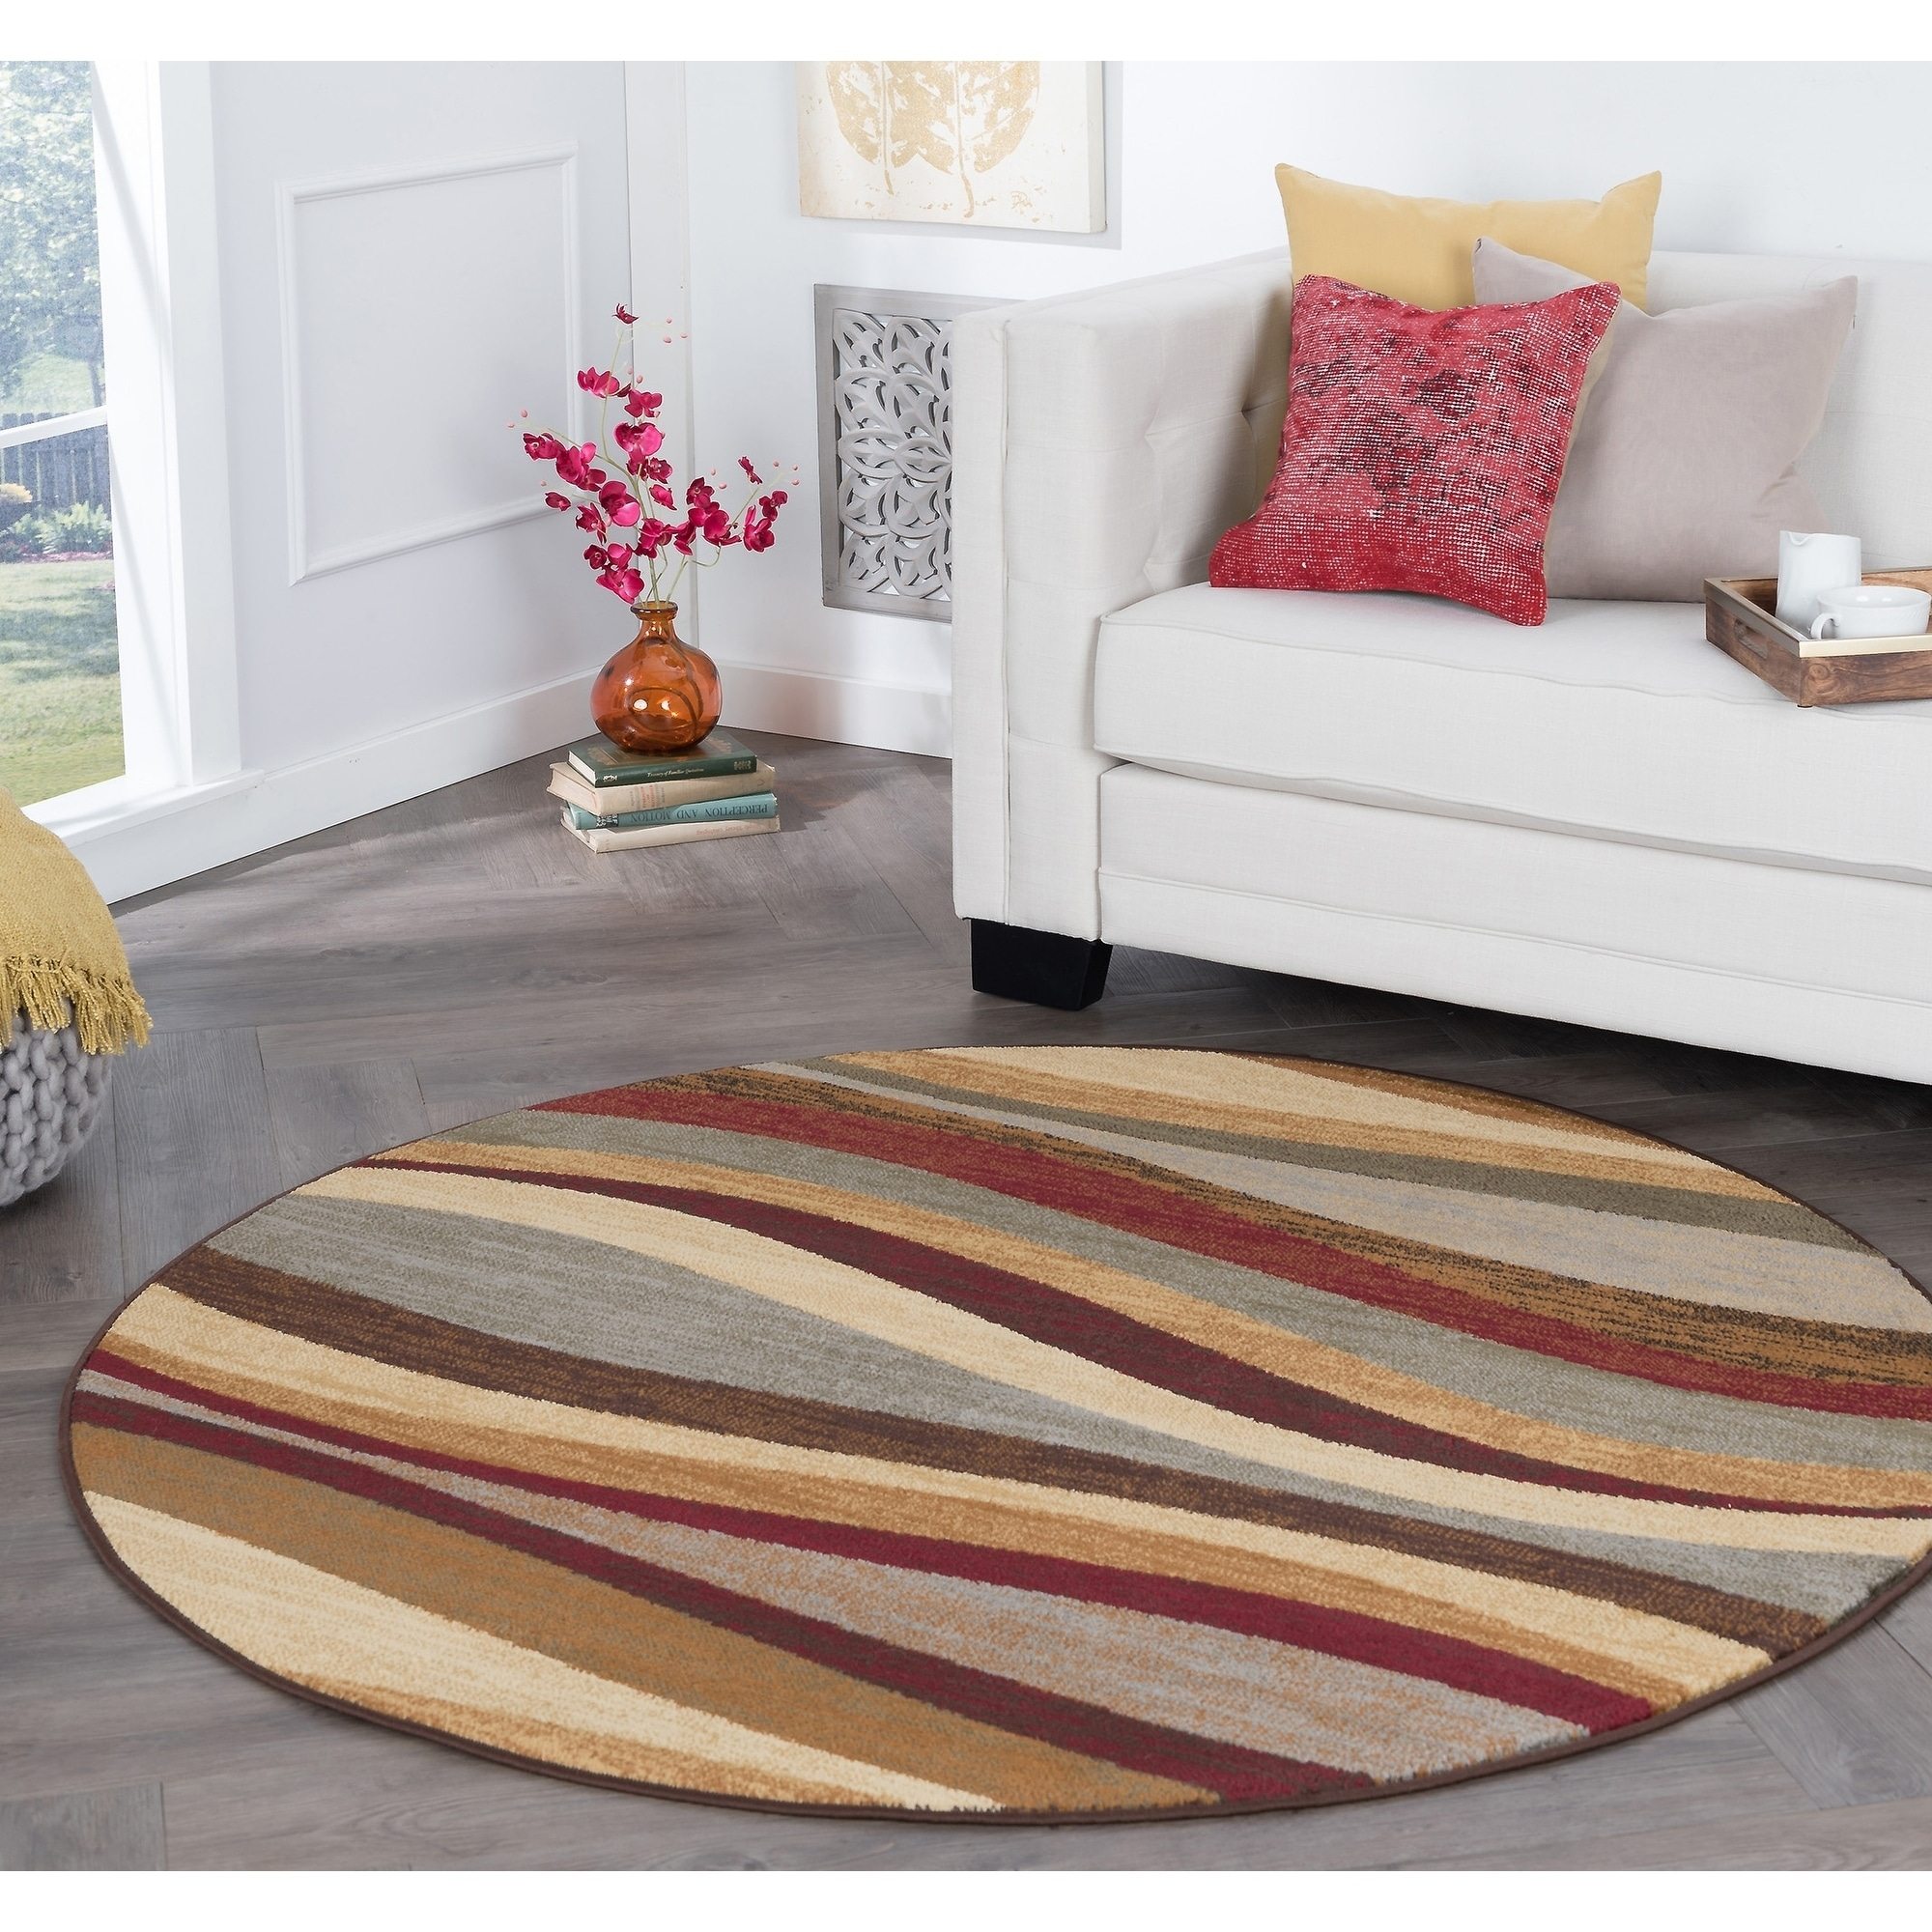 Image of: Shop Alise Rugs Rhythm Contemporary Abstract Round Area Rug 5 3 X 5 3 Overstock 9307022